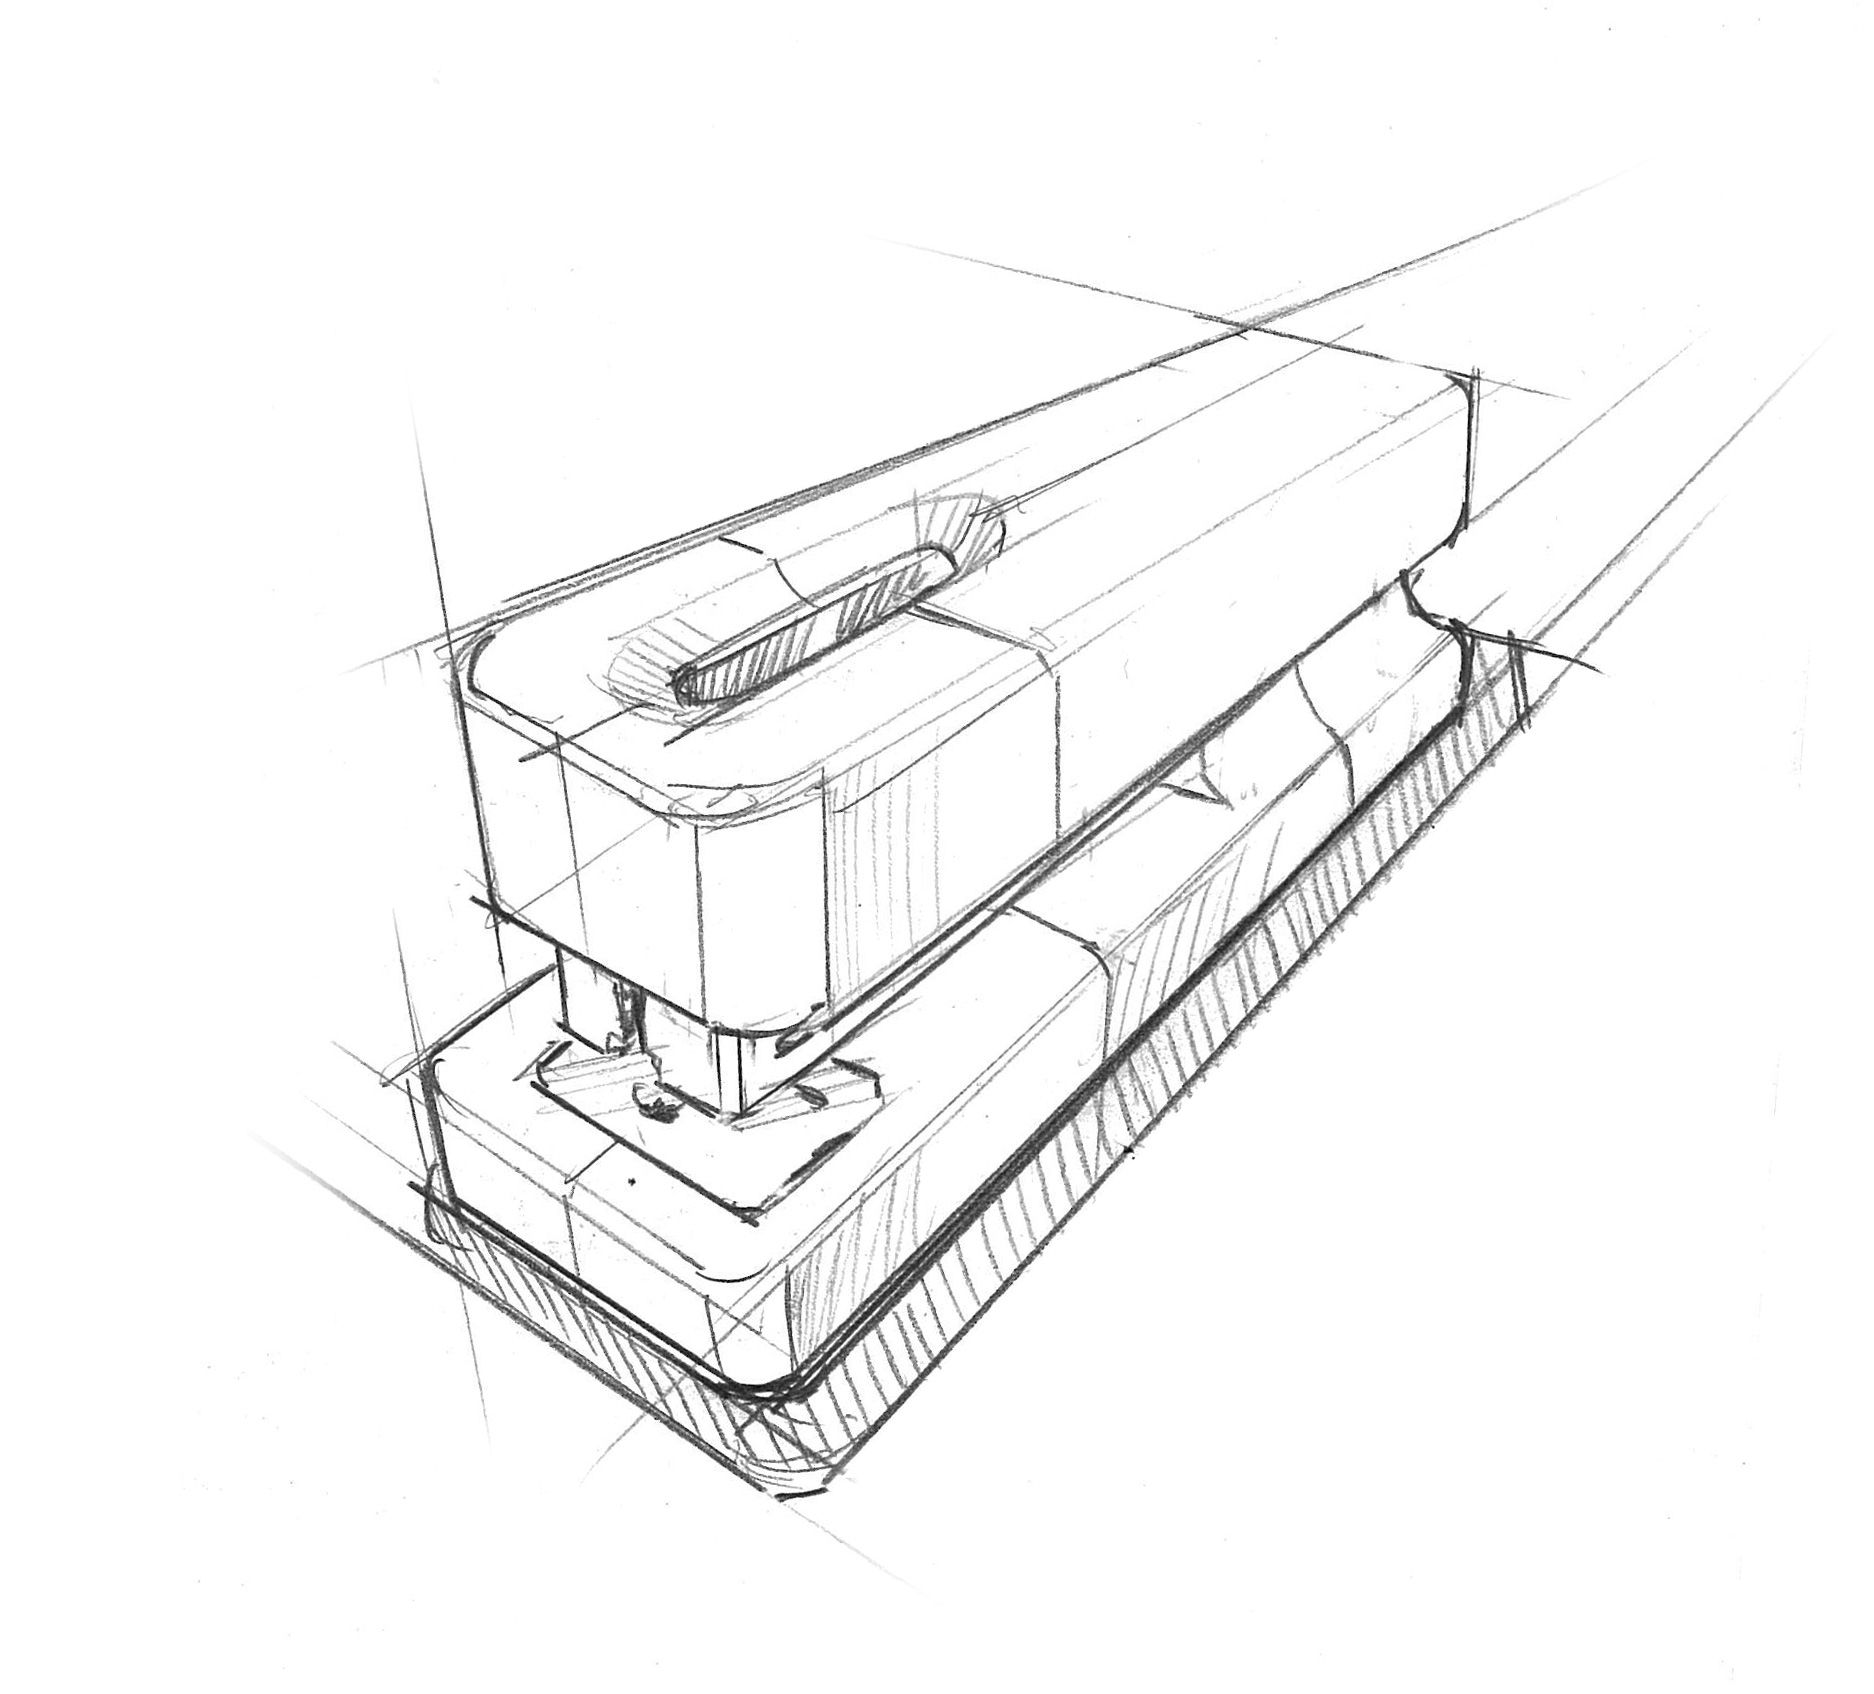 Stapler Technical Drawing 2 Design Sketches